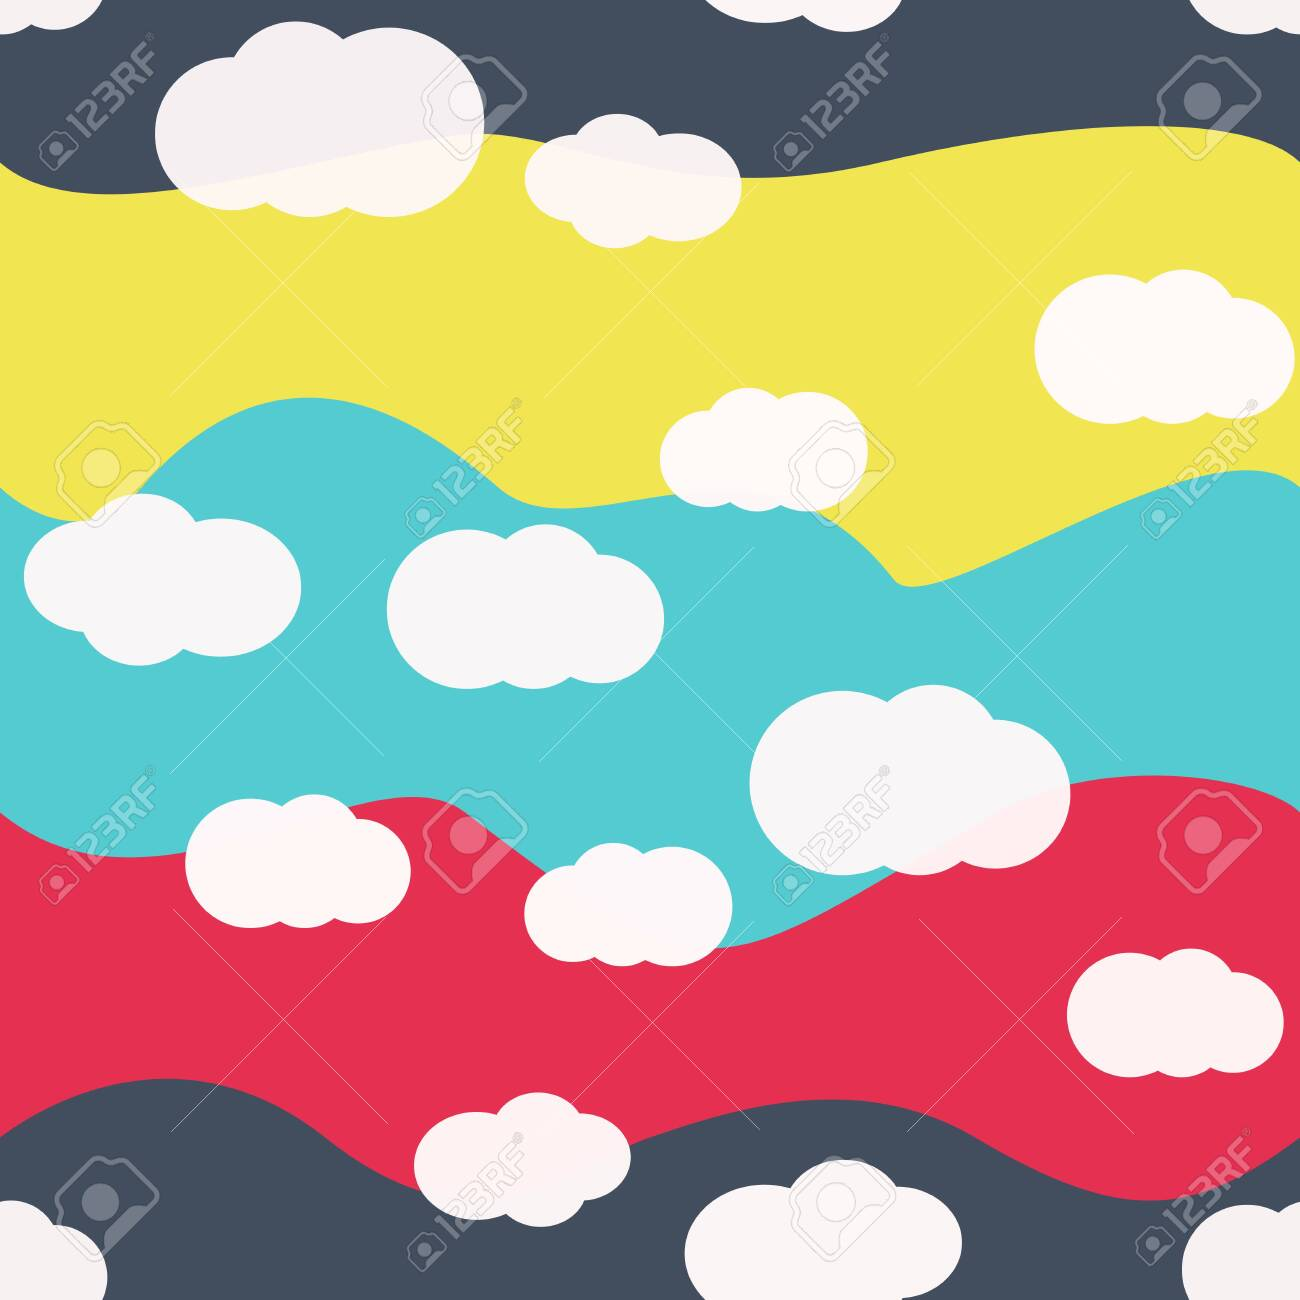 White Clouds On Bright Colors Background Vector Seamless Pattern Royalty Free Cliparts Vectors And Stock Illustration Image 121219350